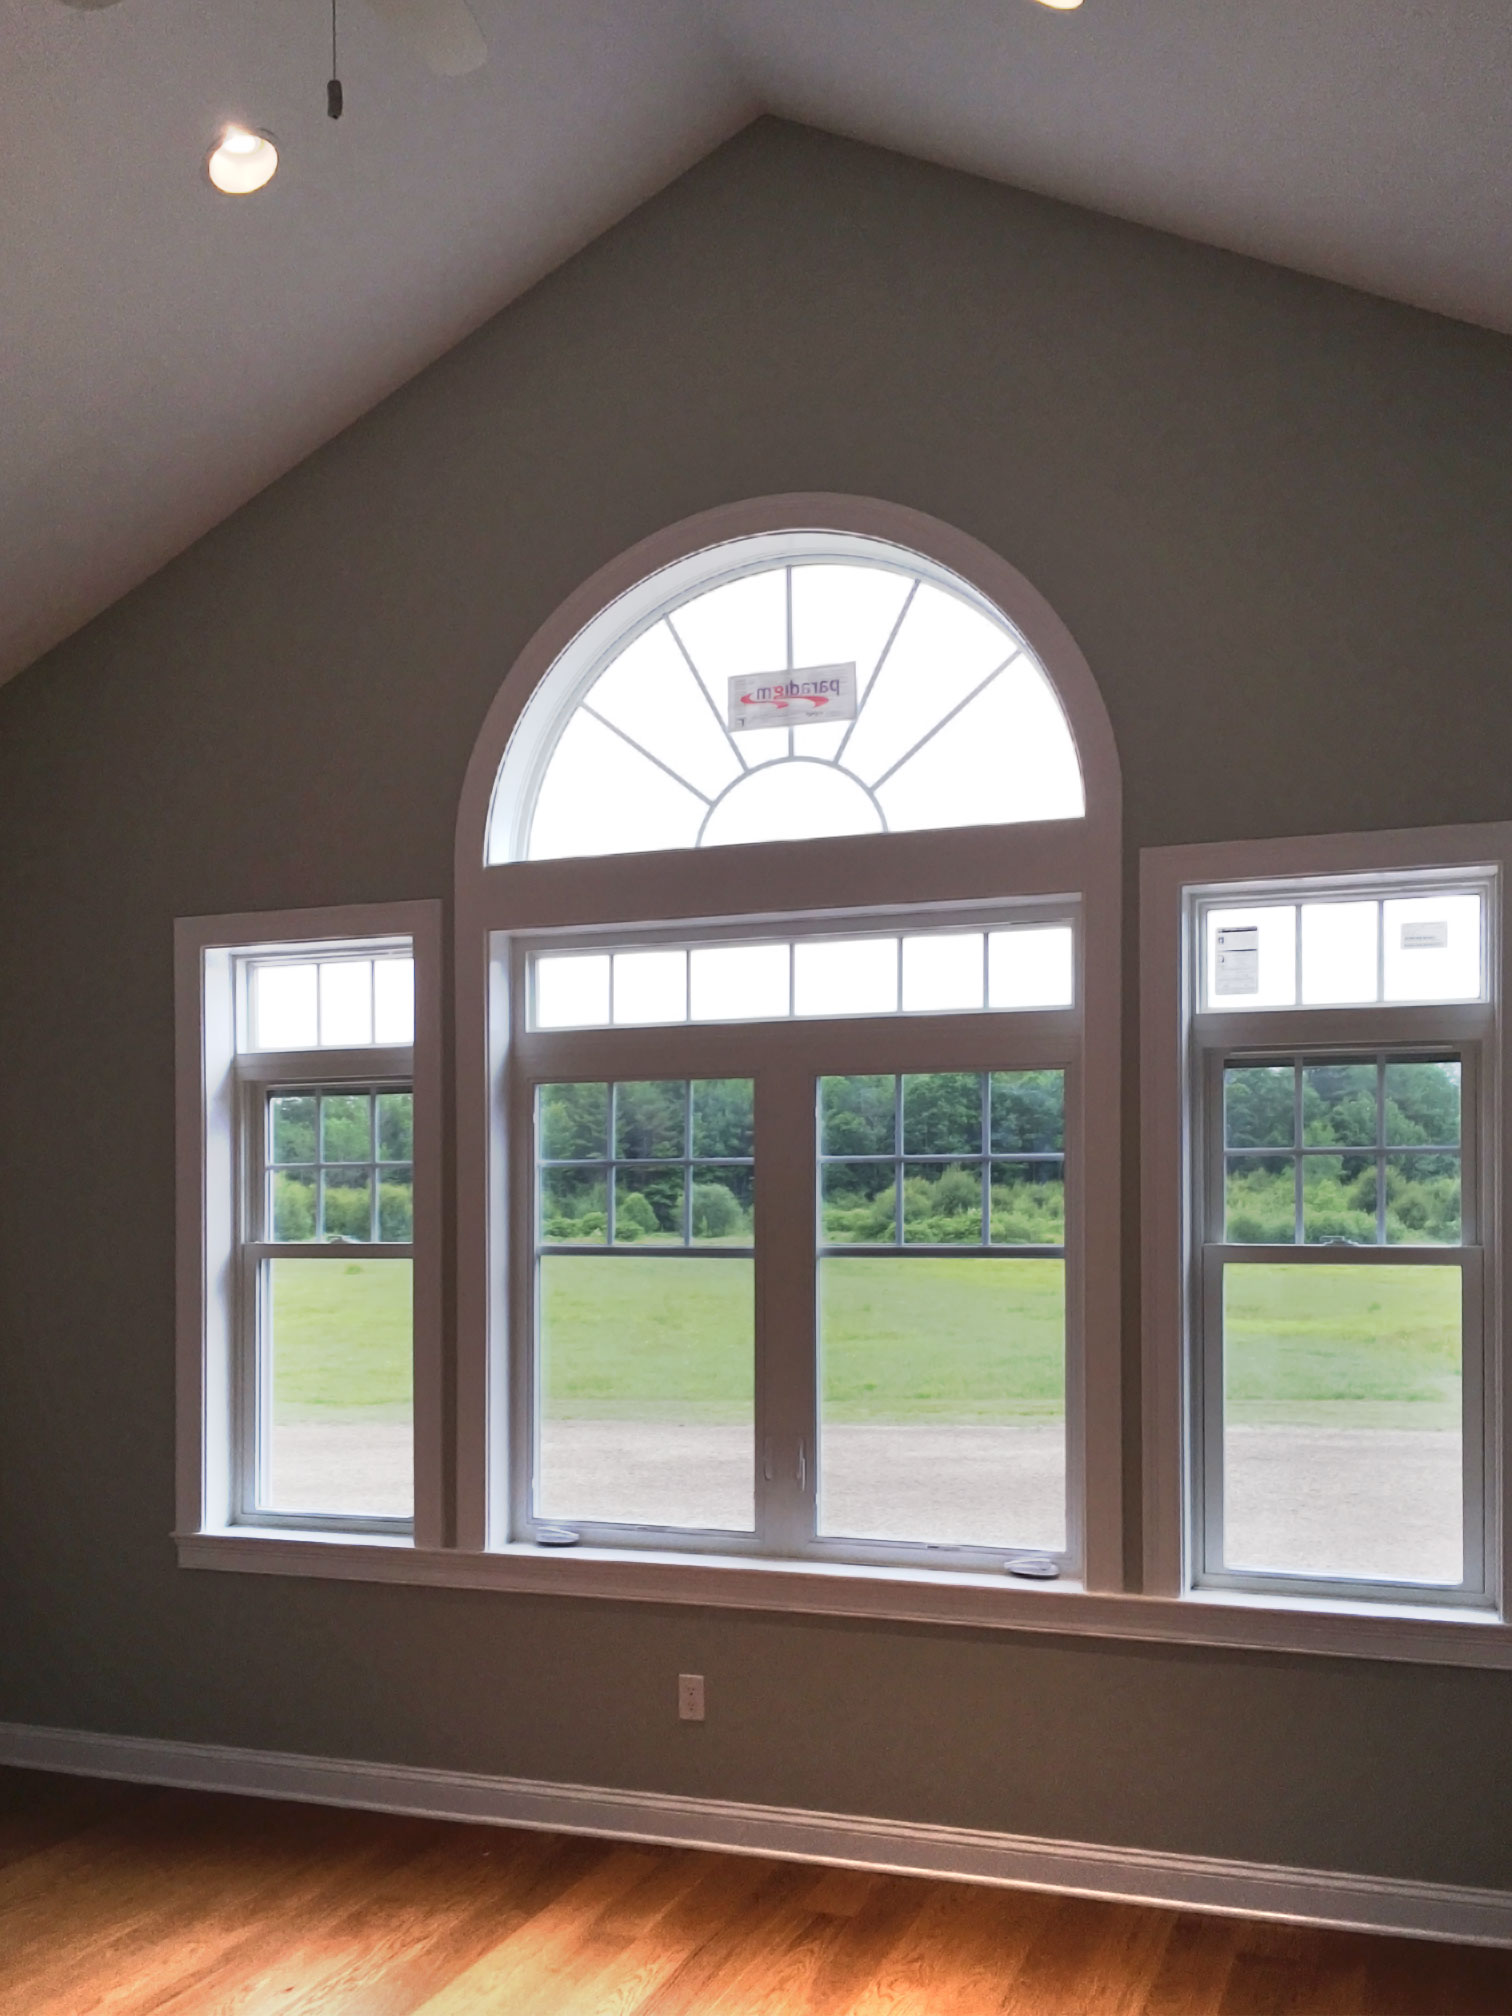 Arundel Residence Interior Master Windows